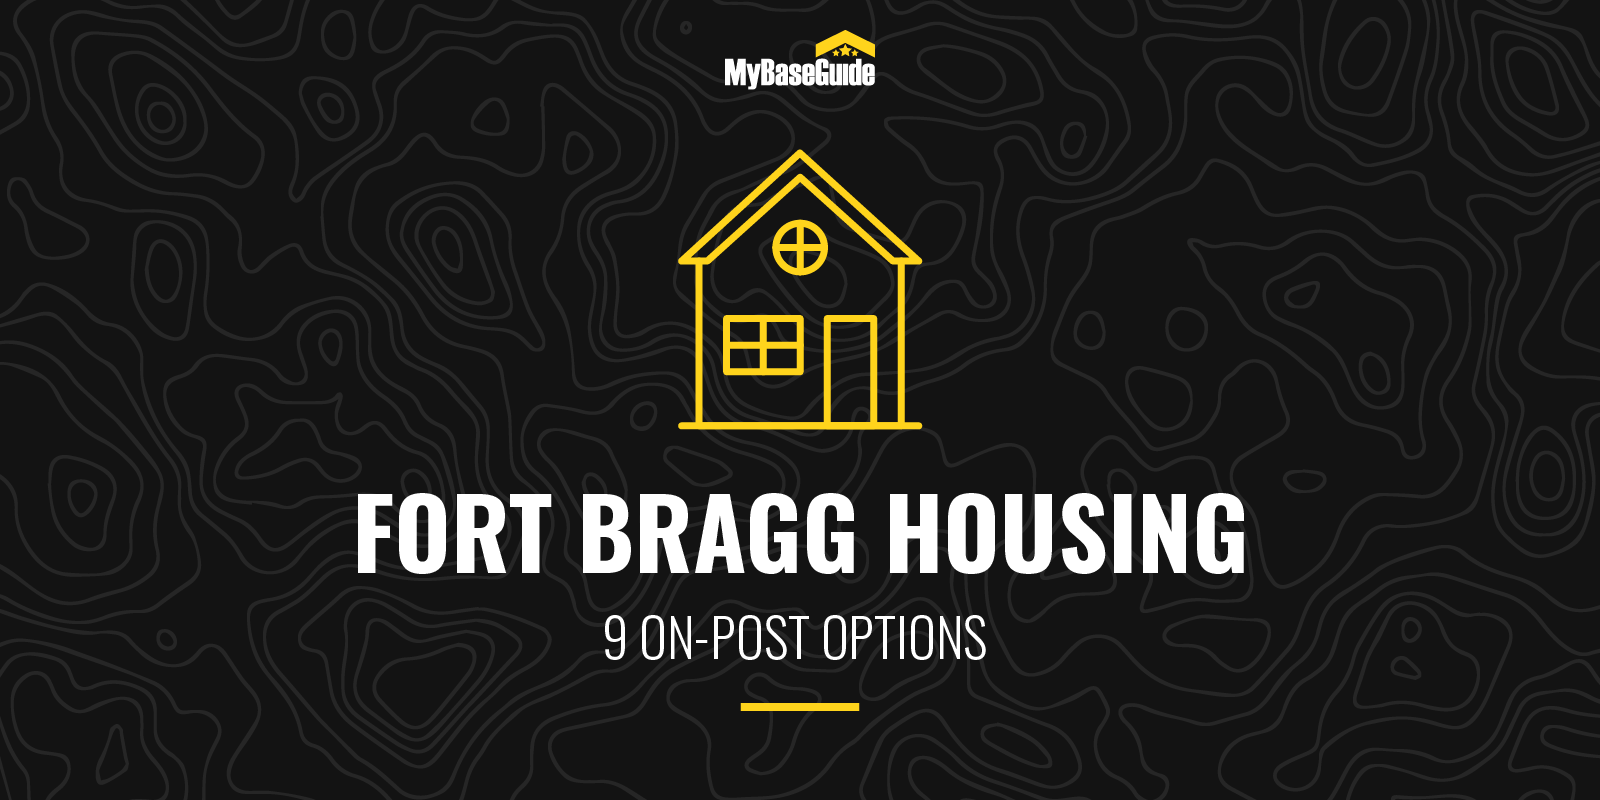 Fort Bragg Housing: 9 On Post Options